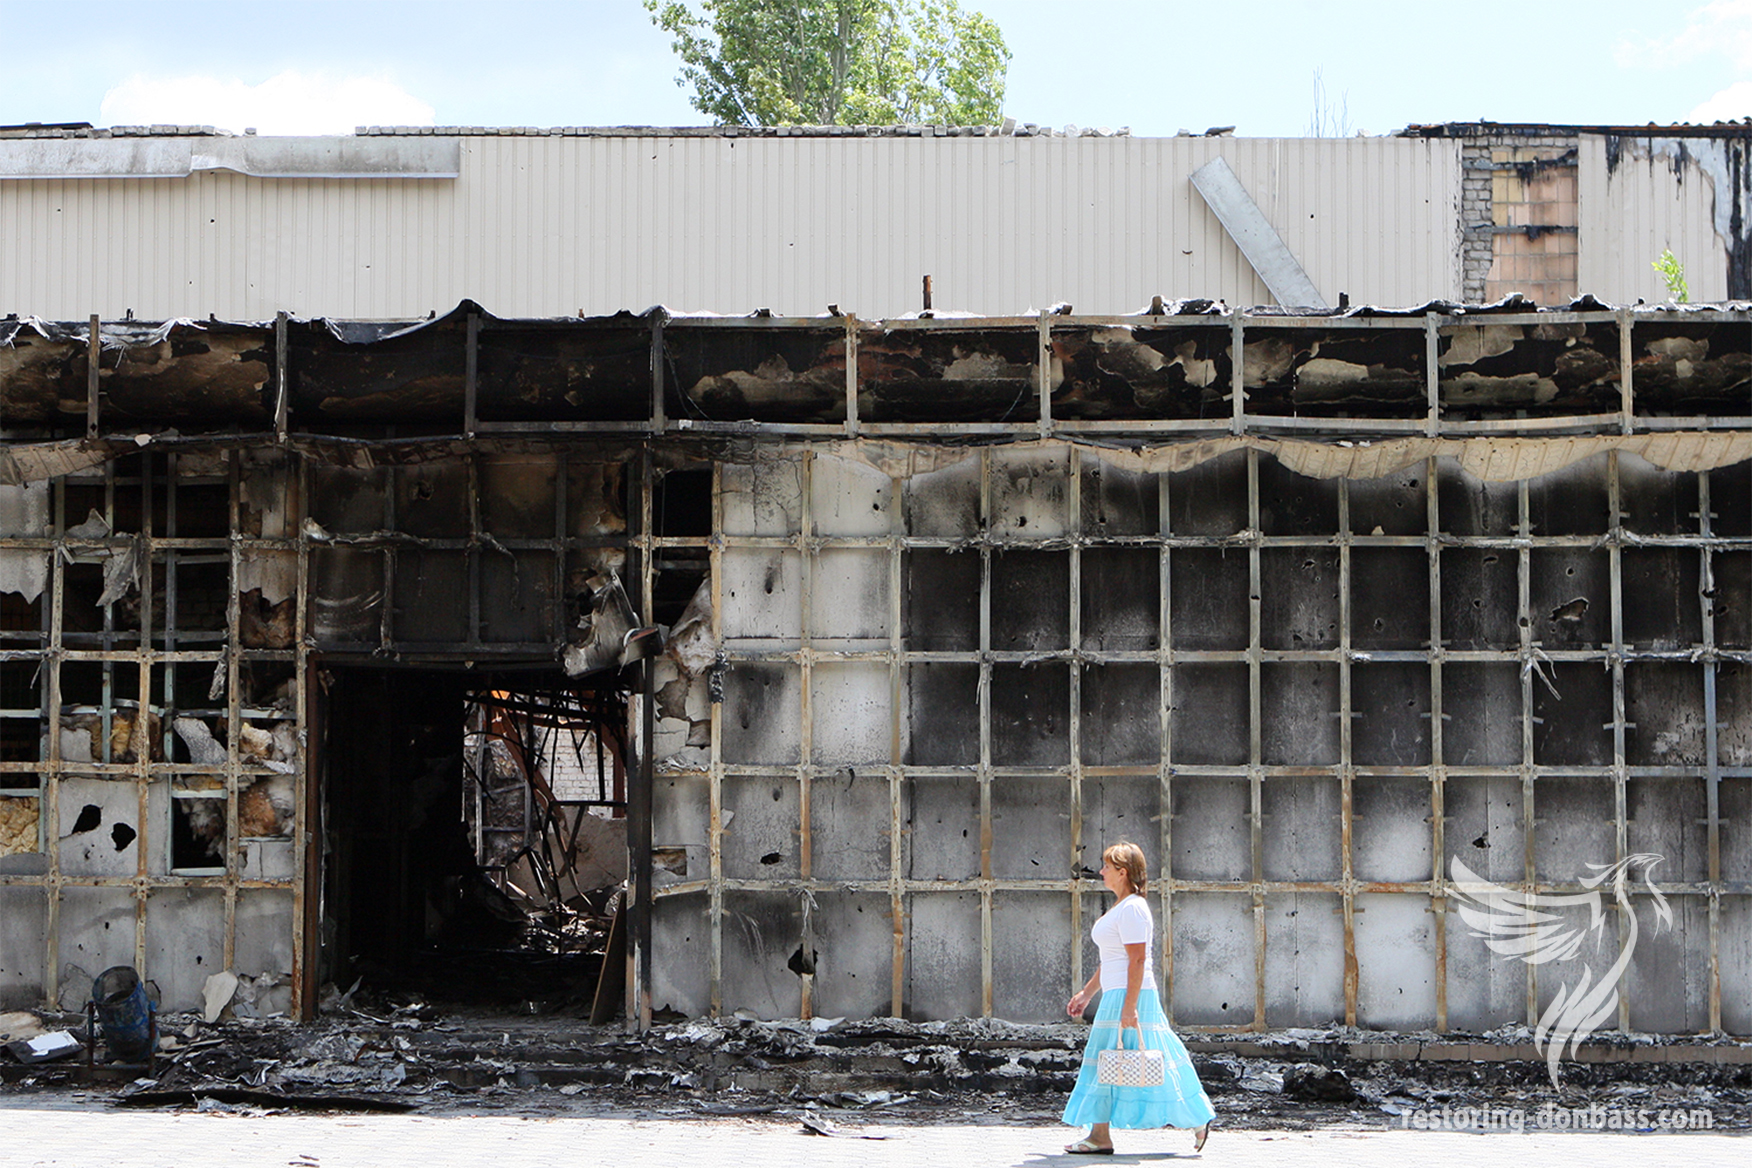 Burned supermarket in the settlement Oktyabrsky near the Donetsk airport